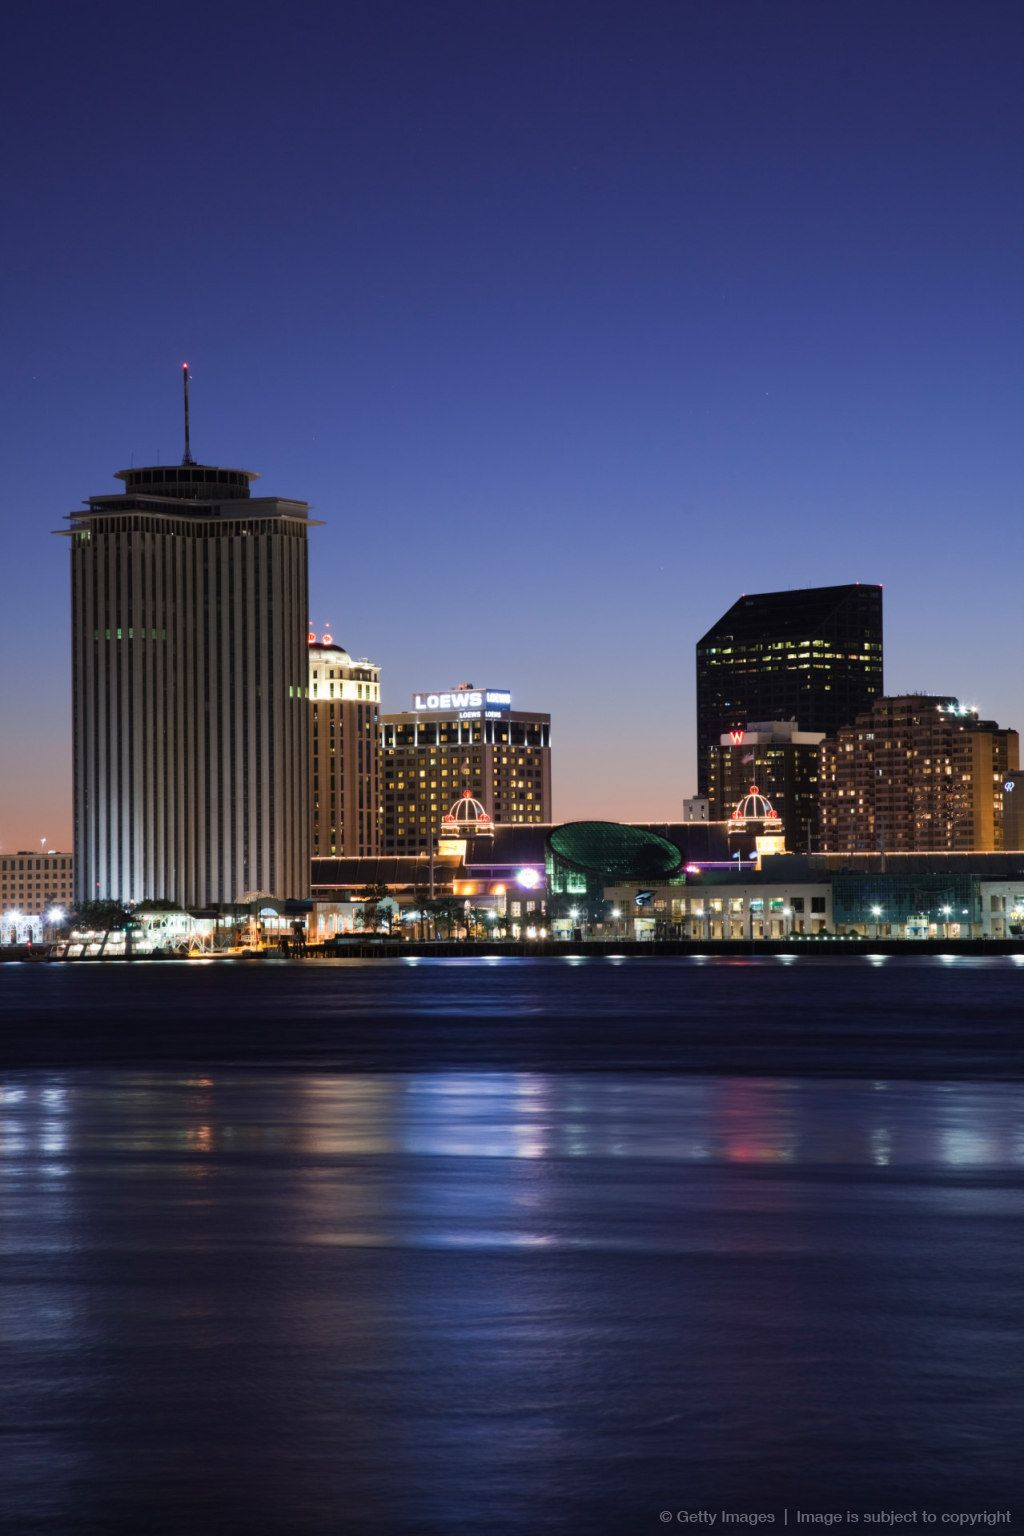 Buildings at the waterfront, Mississippi River, New Orleans, Louisiana.